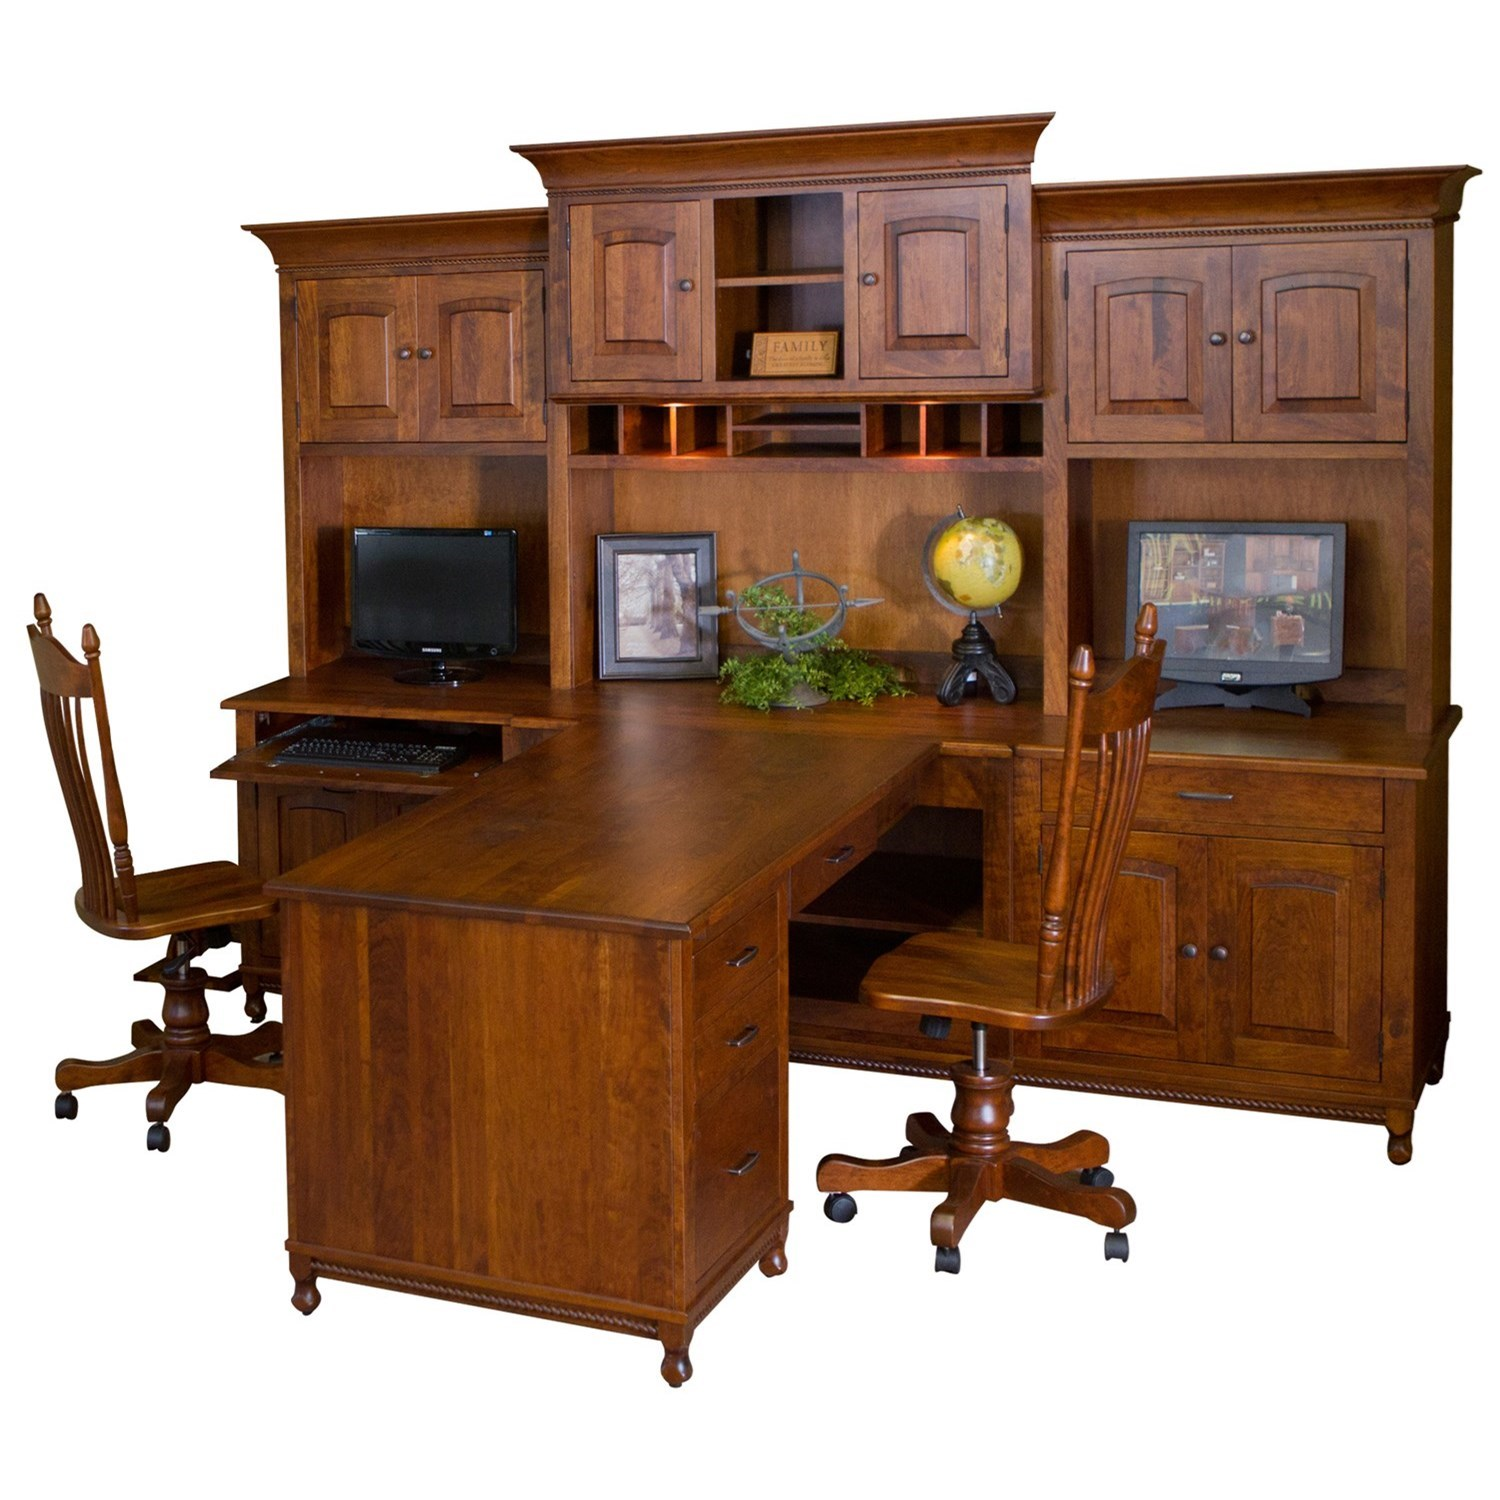 Henry Stephens Partner Desk by Maple Hill Woodworking at Saugerties Furniture Mart